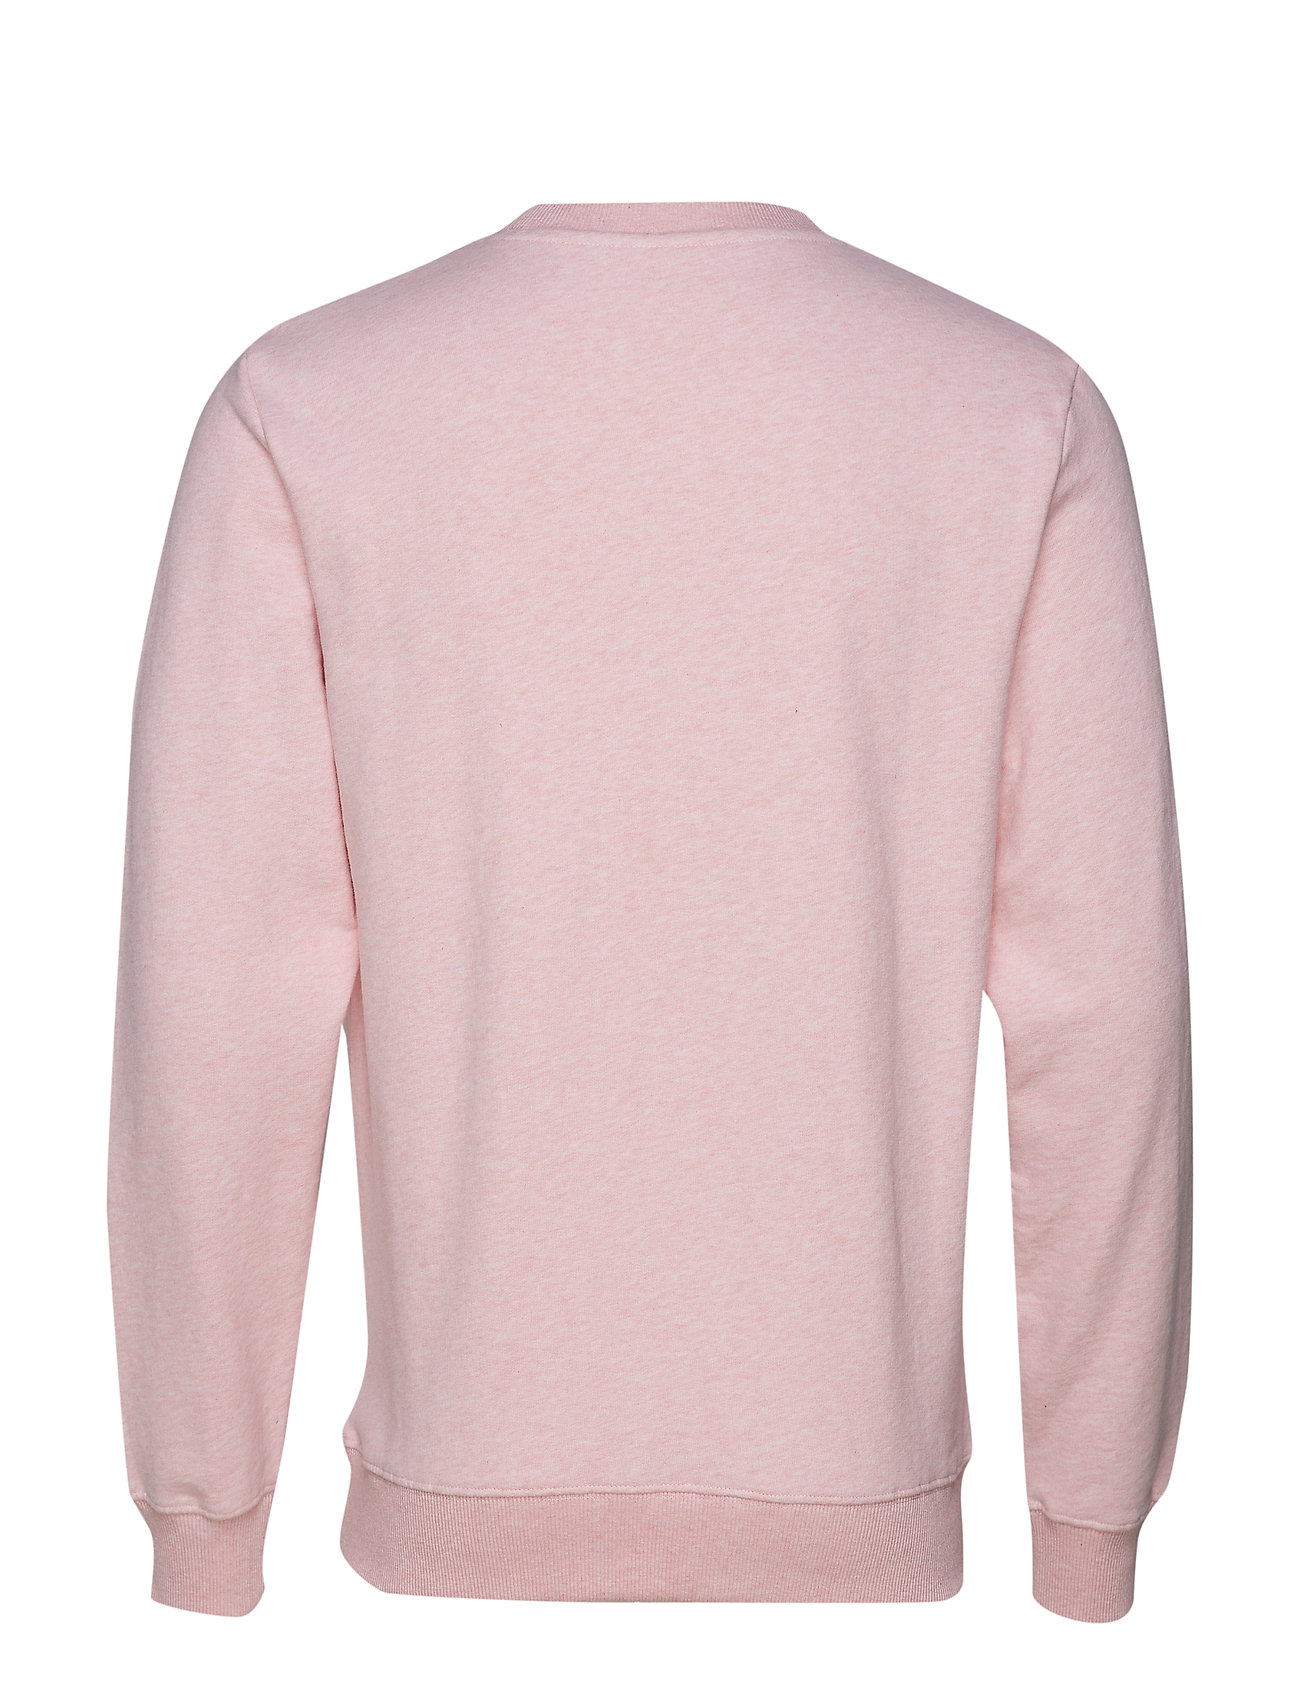 MelangeKnowledge Apparel Cotton LogoGotspink Sweat Owl With Chest 0wOknP8NX